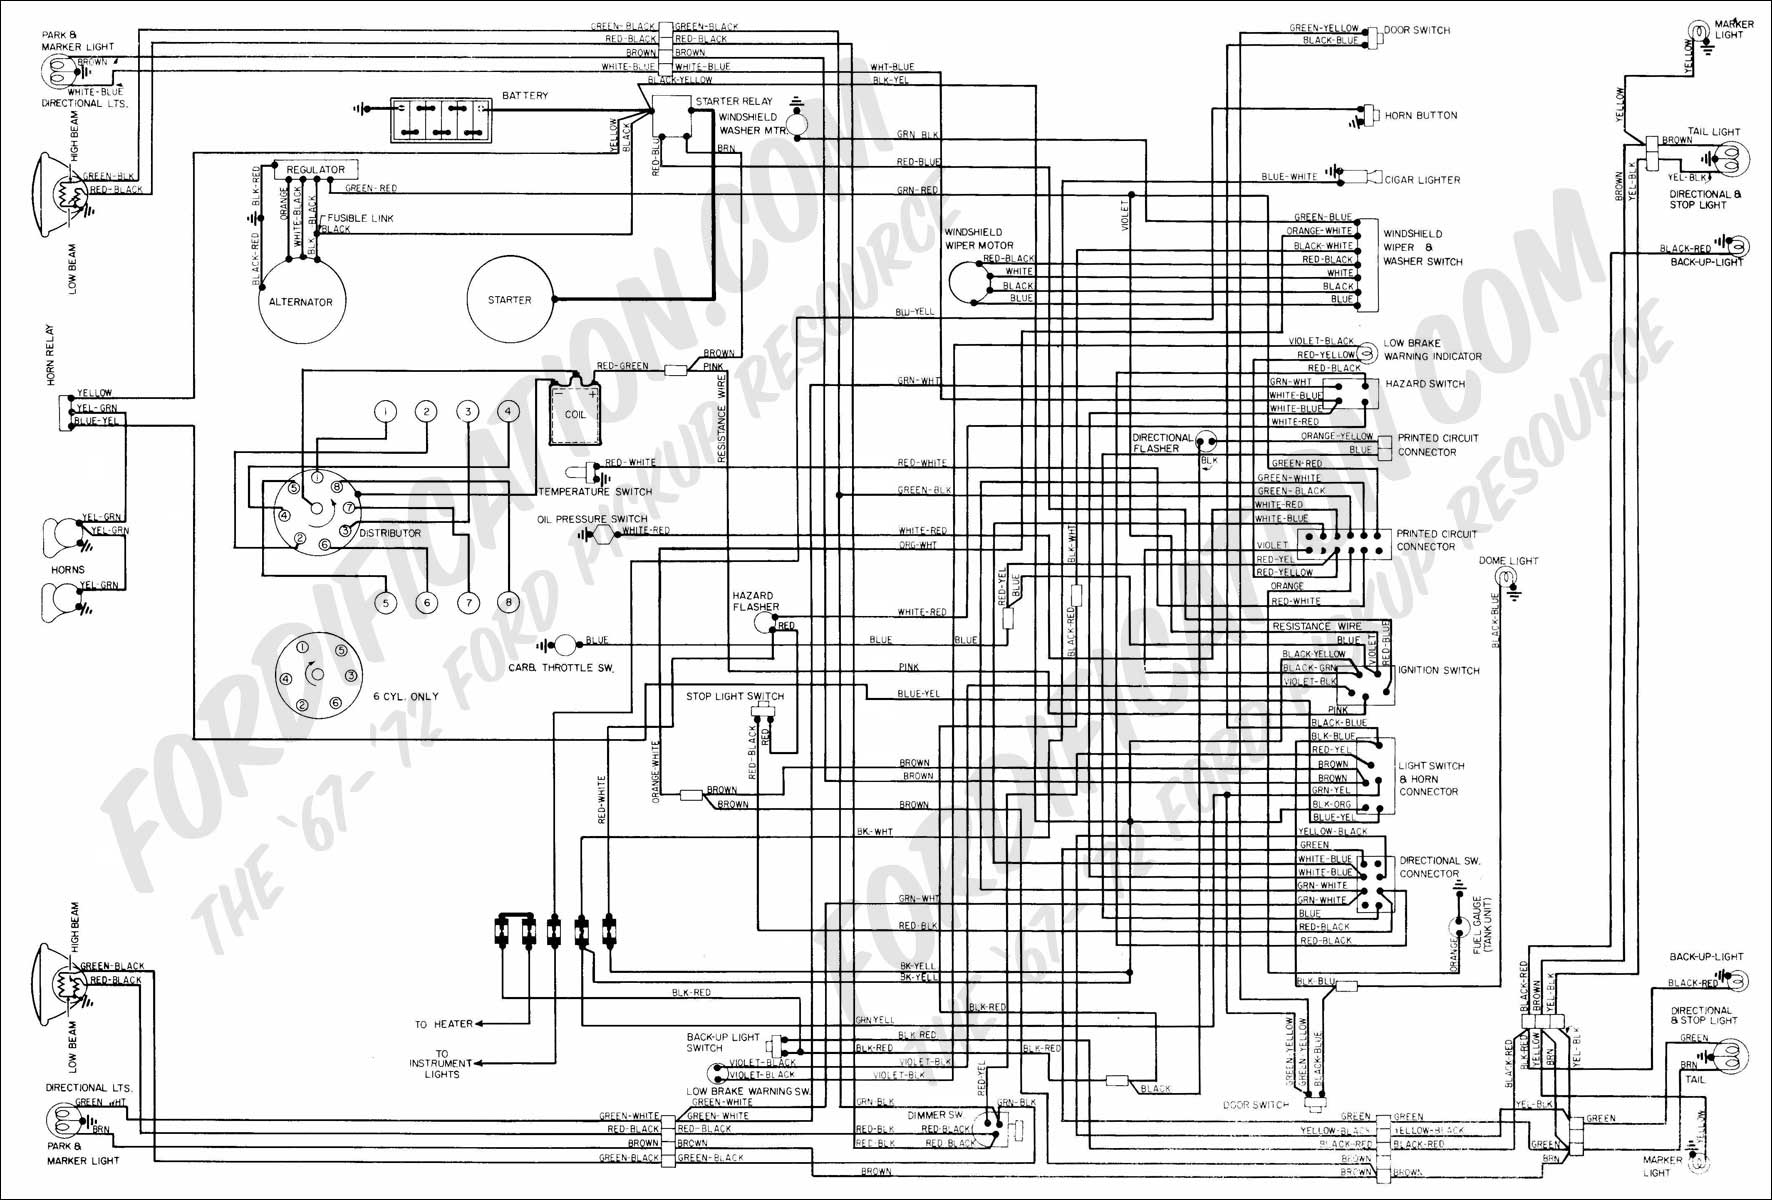 2003 Ford E150 Washer Diagram Wiring Schematic Diy Enthusiasts 1999 Fuse Truck Technical Drawings And Schematics Section H Rh Fordification Com 2006 Obd2 Wireing Diagrams E 250